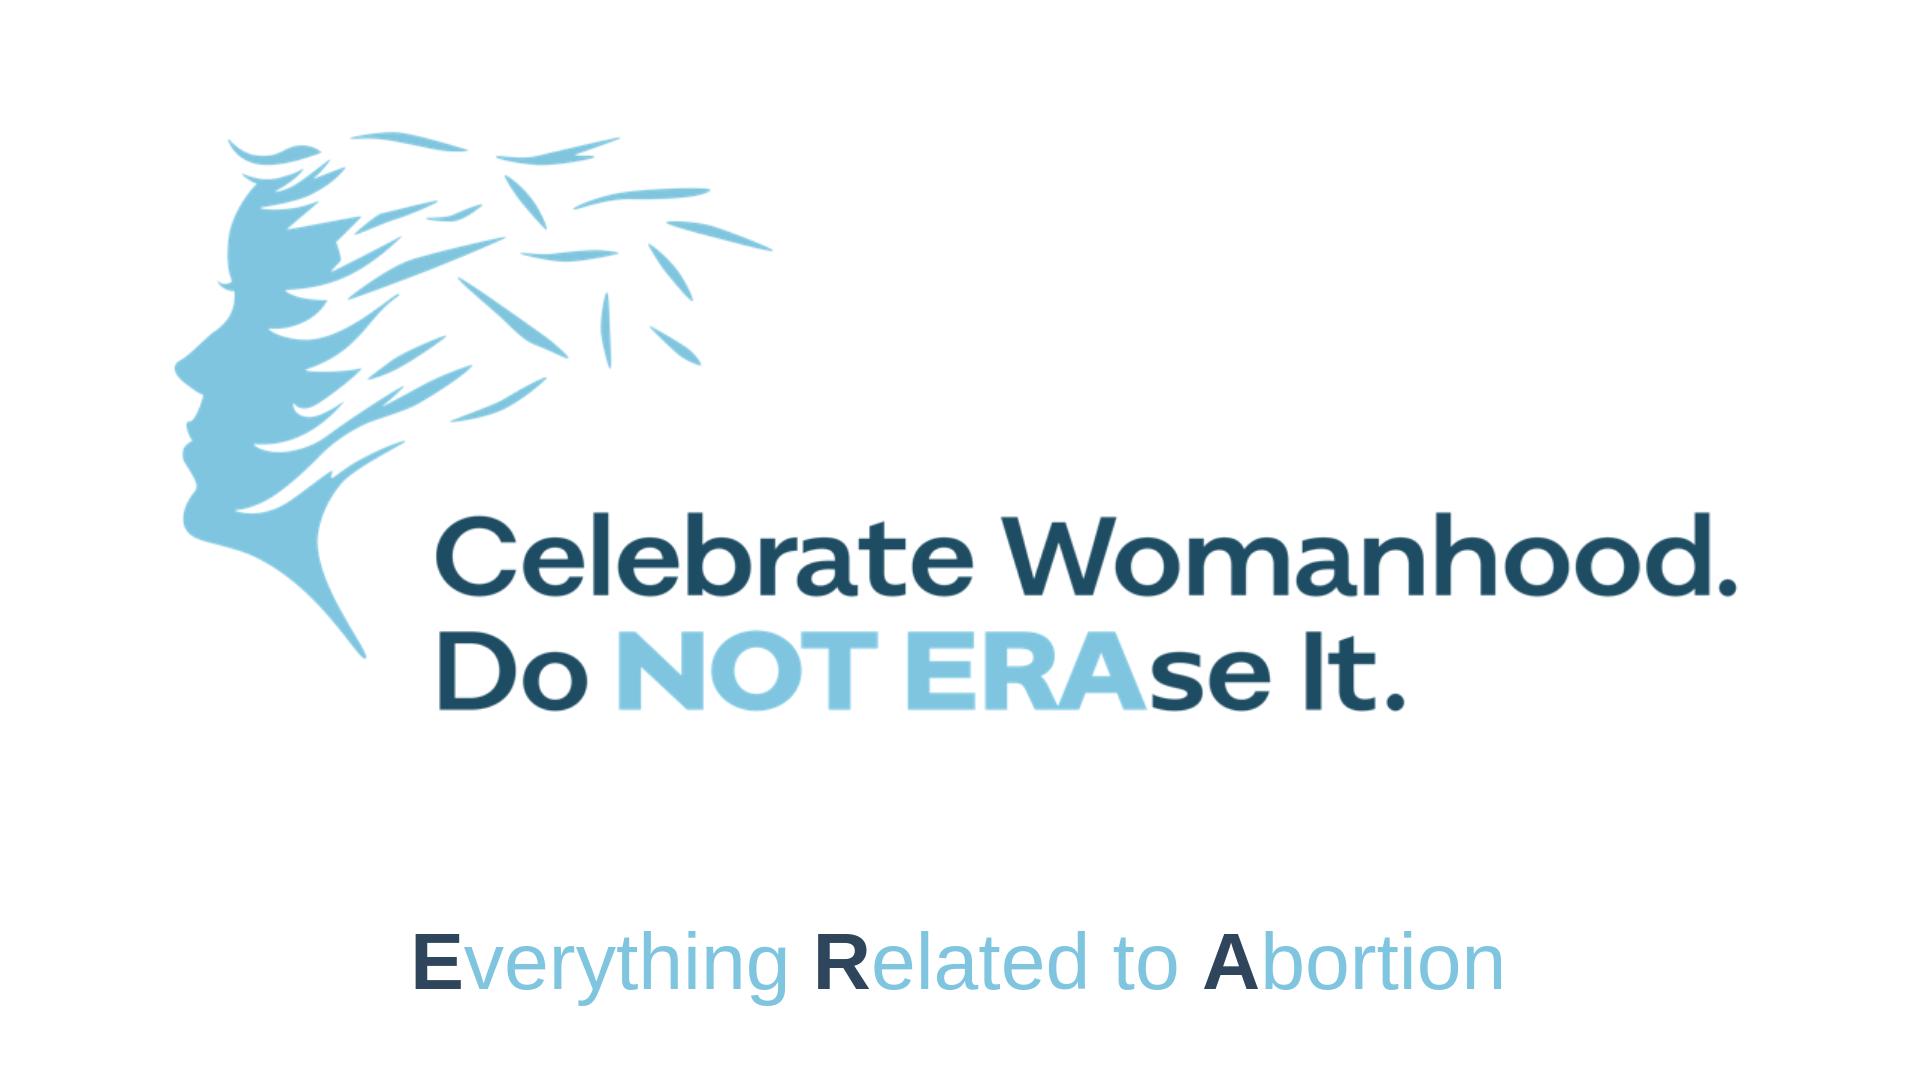 Everything Related to Abortion - The push for the ERA is motivated by the impact it would have on solidifying abortion as a constitutional right. Find out more here.